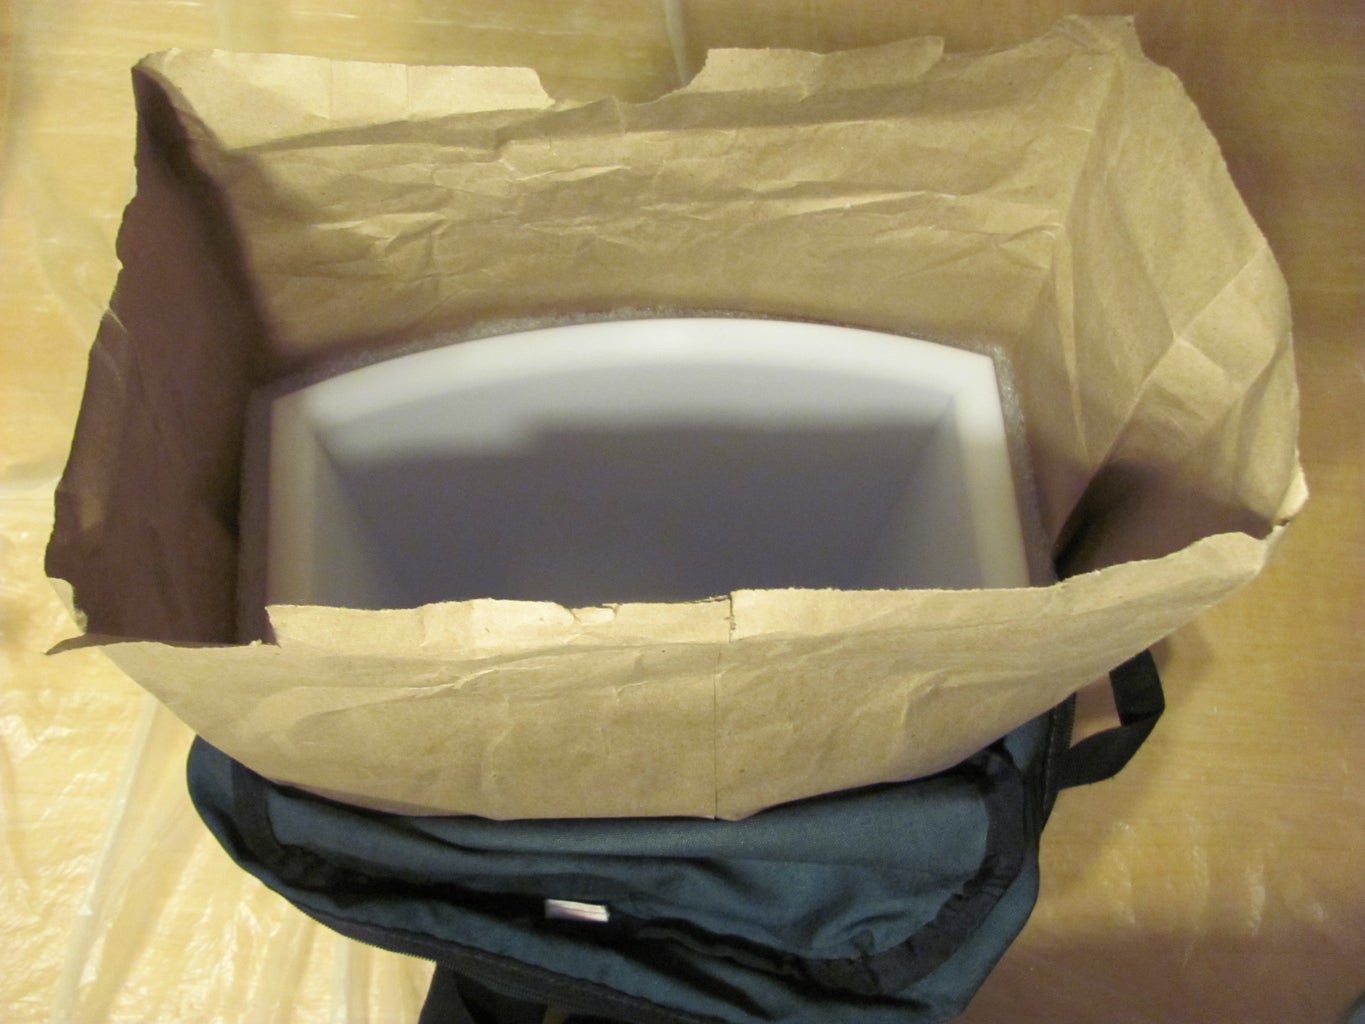 Test Fit Your Trash Can Into the Brown and Plastic Bags and Backpack